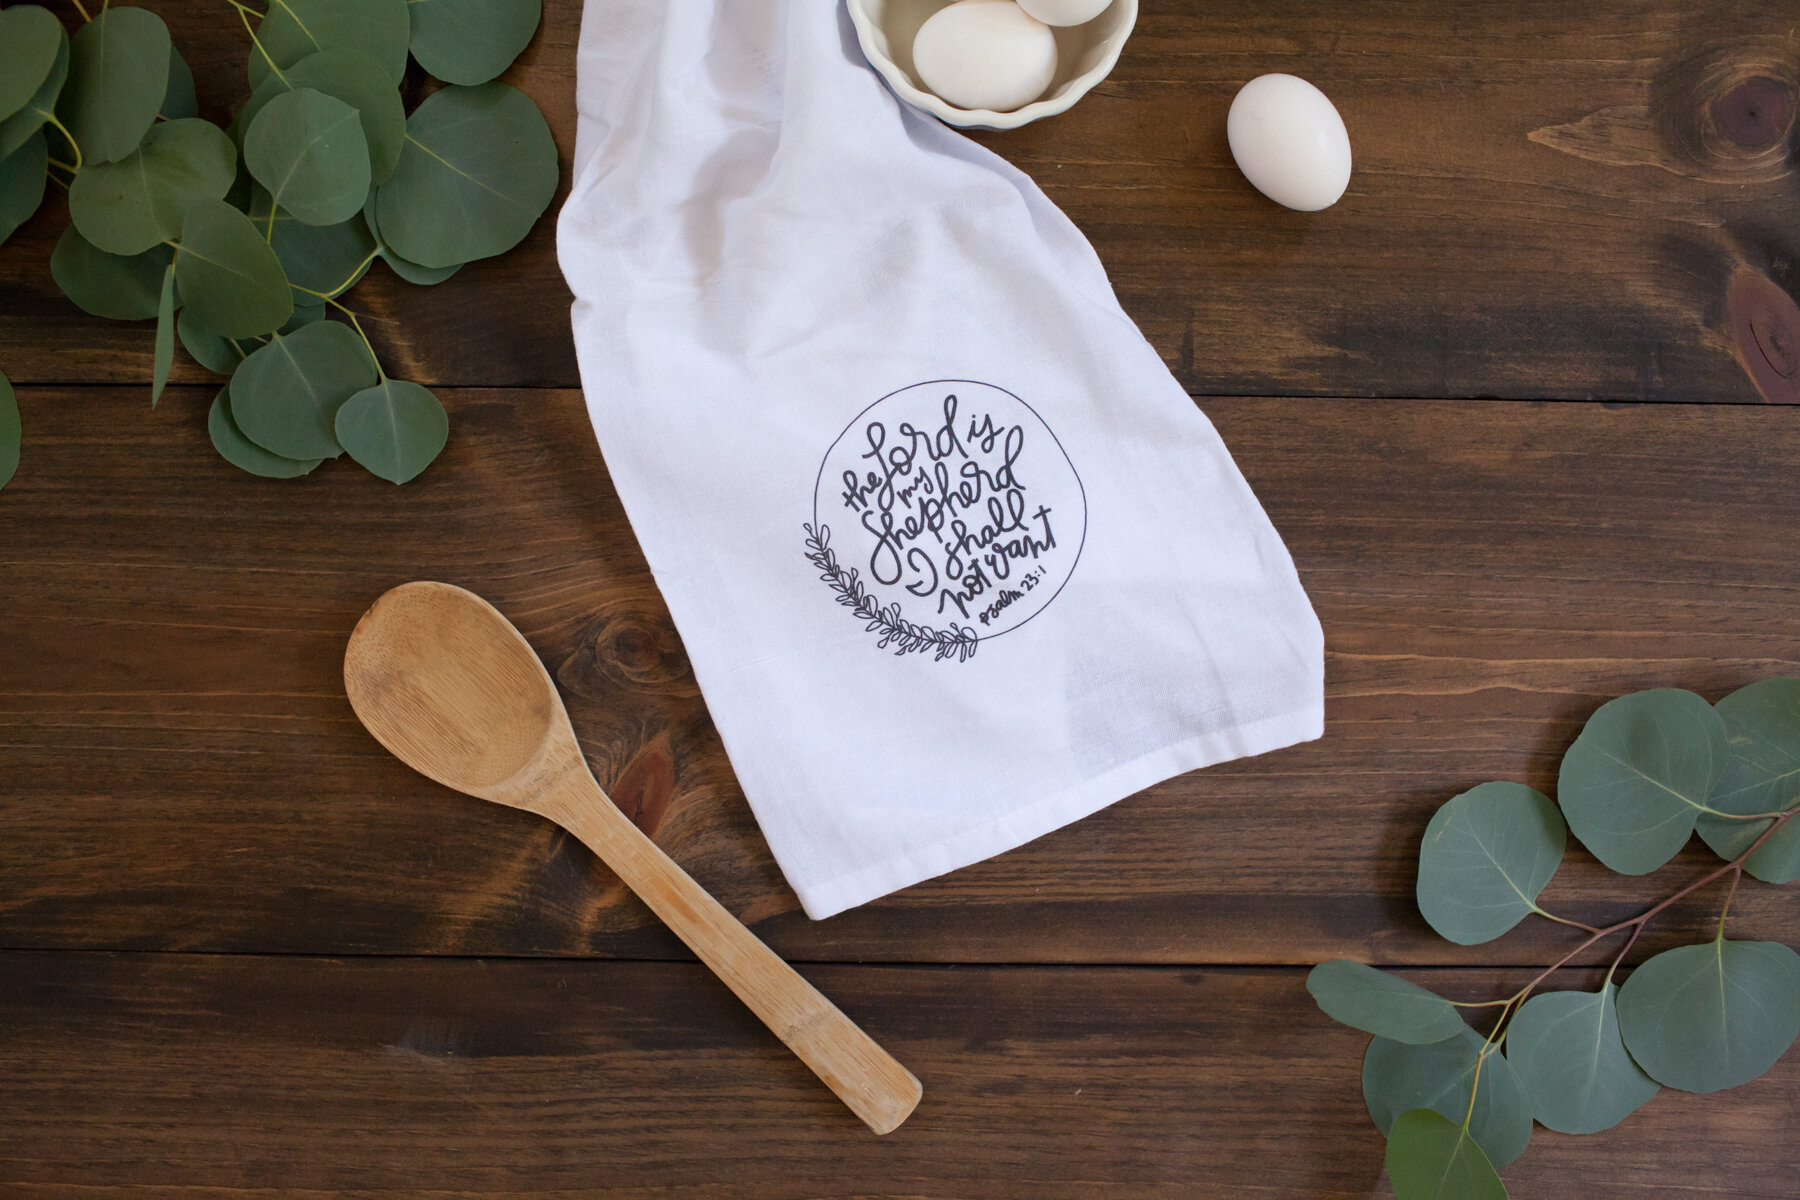 """As this stunning, flour sack tea towel hangs off your oven handle, may the truth of its words seep into your soul. """" I Shall Not Want Tea Towel """""""